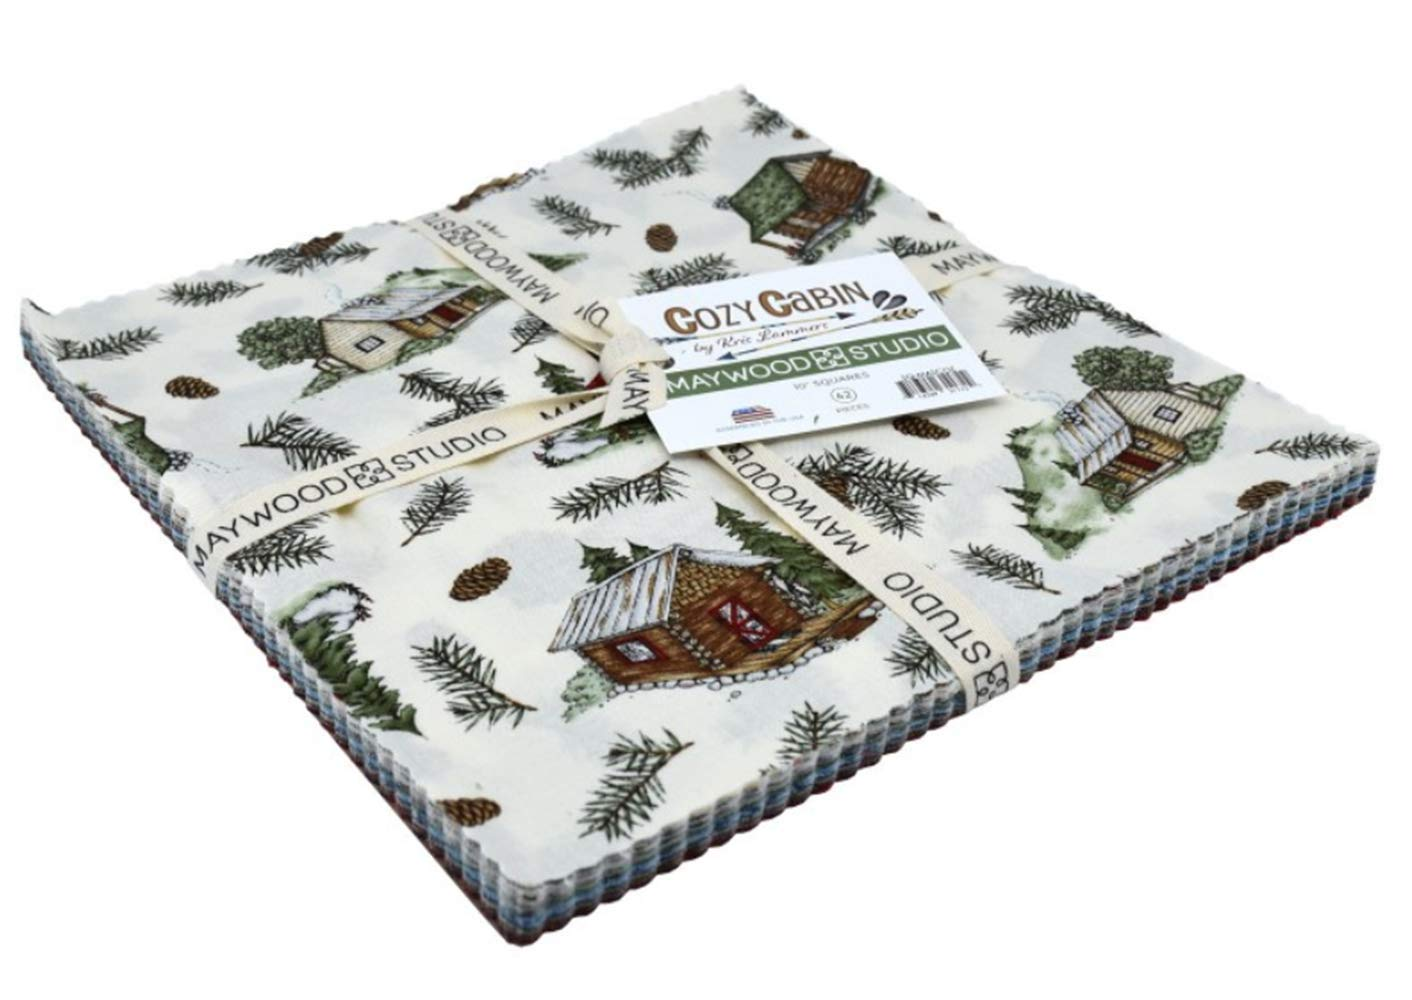 Cozy Cabin 10-inch Precut Squares Cotton Fabric Quilting Assortment Layer Cake by Kris Lammers for Maywood Studio by Maywood Studio